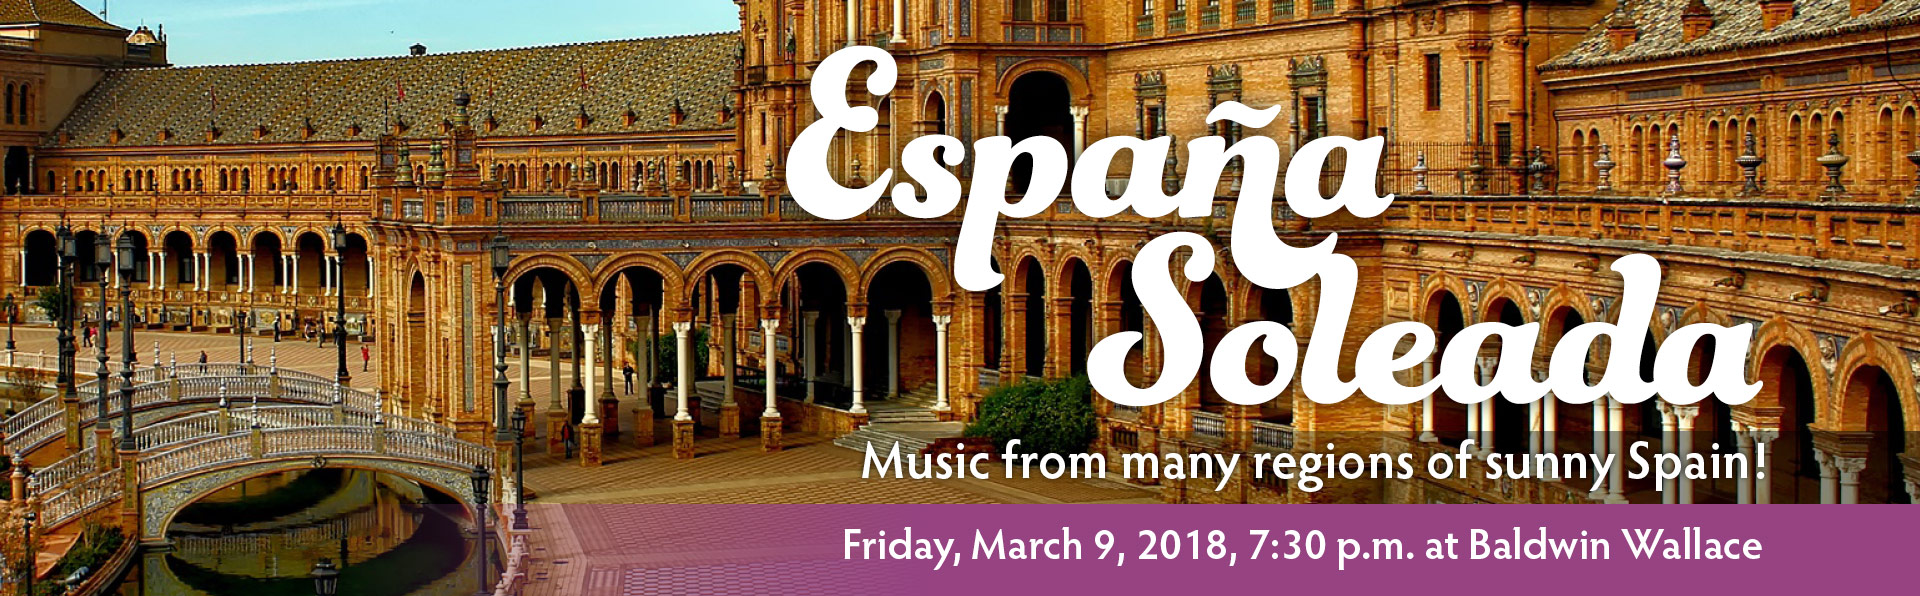 March Concert Espana Soleado, Friday March 9 at 7:30 PM at Baldwin-Wallace